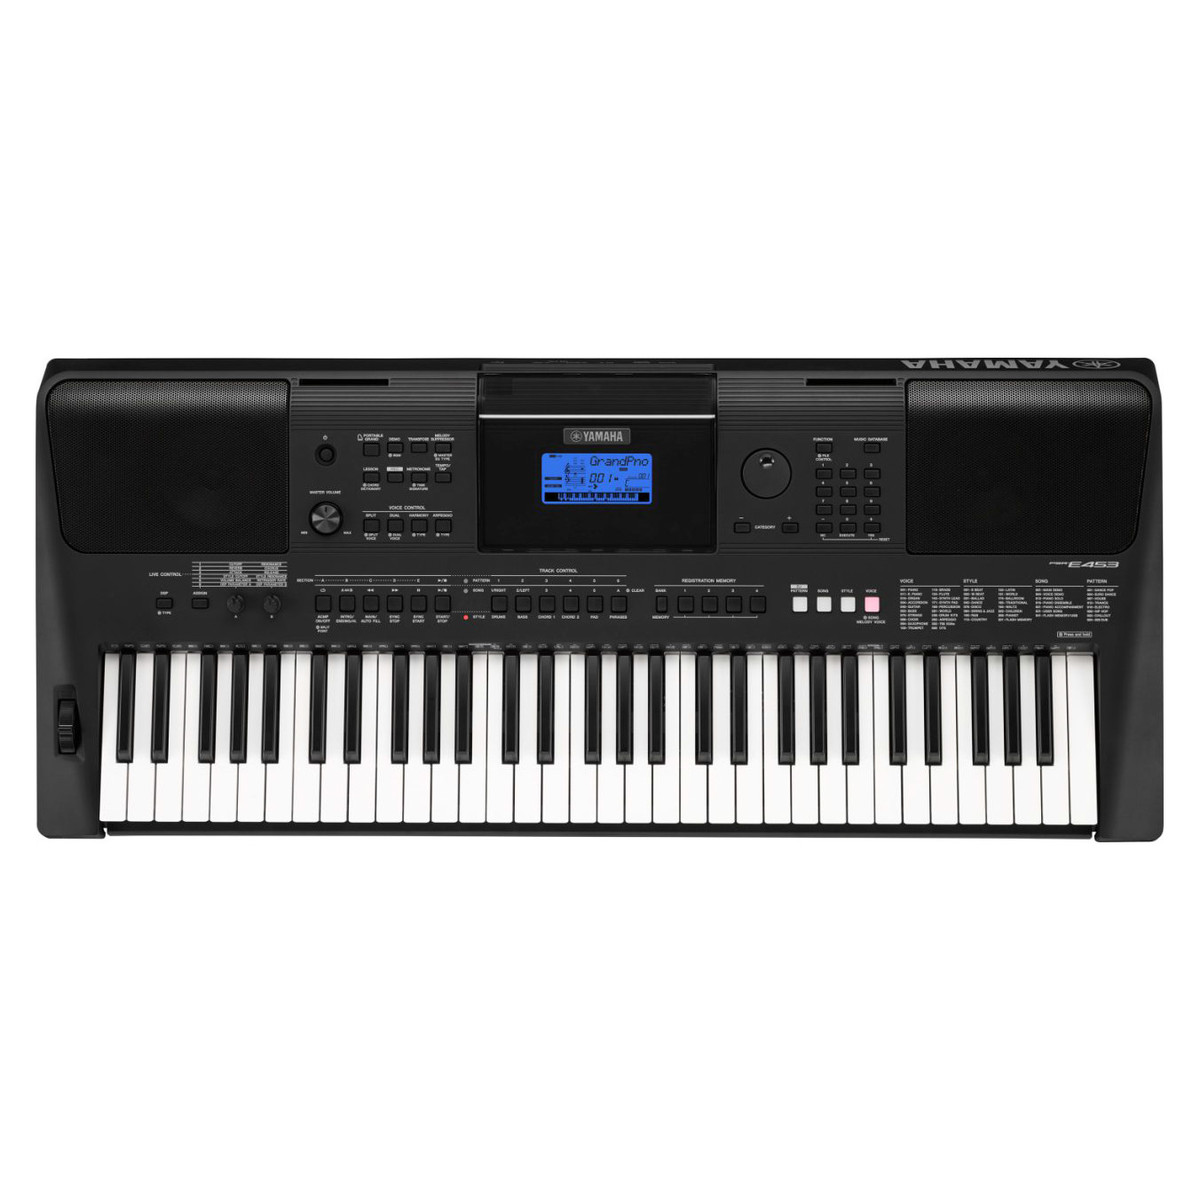 Yamaha psr e453 keyboard compare prices at foundem for Music keyboard yamaha price